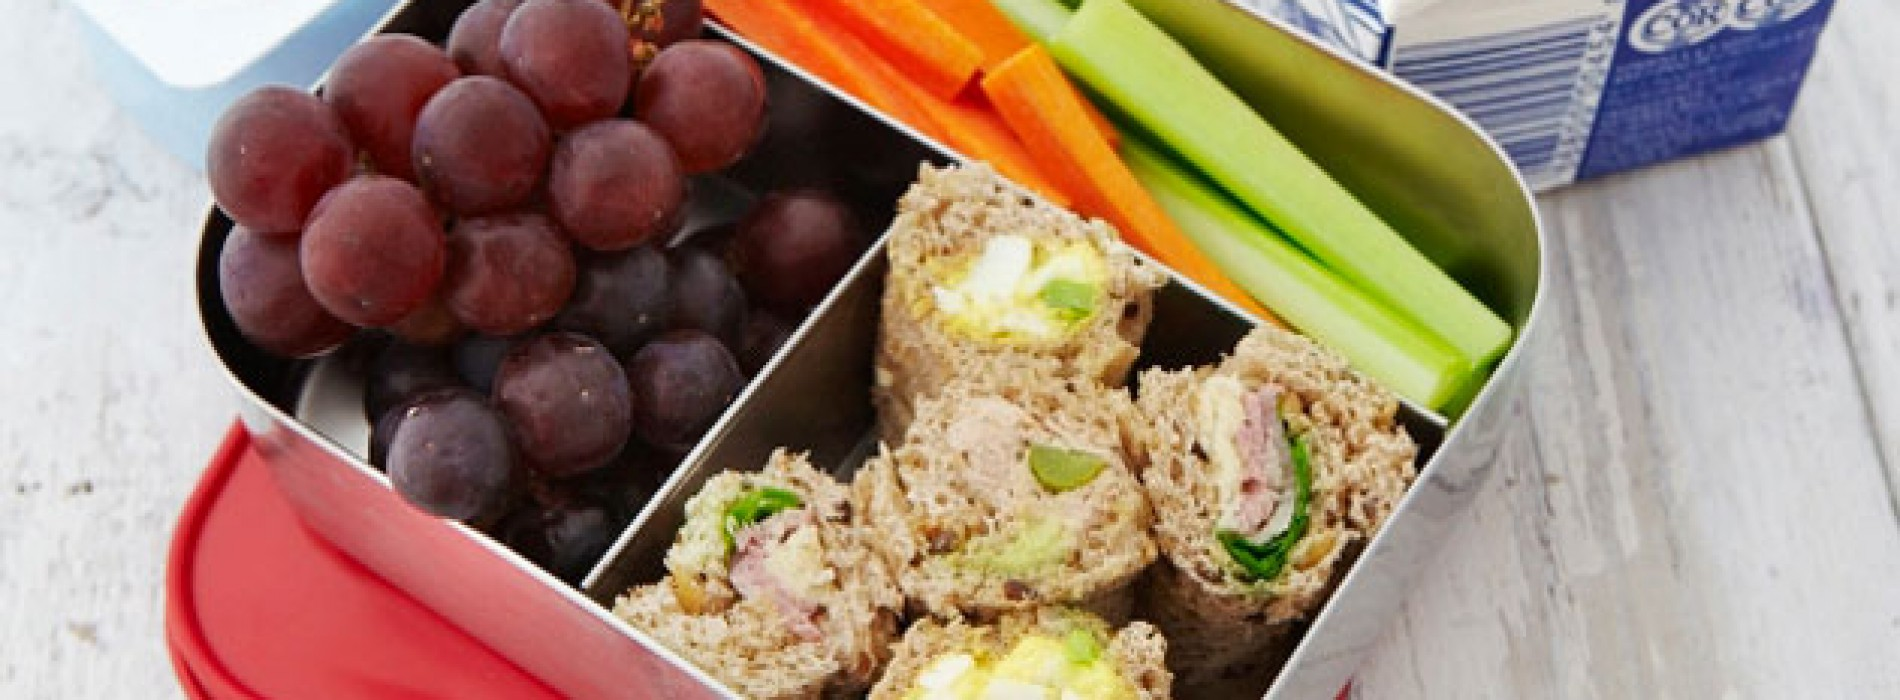 School Lunch Roundup: 10 Great Recipes